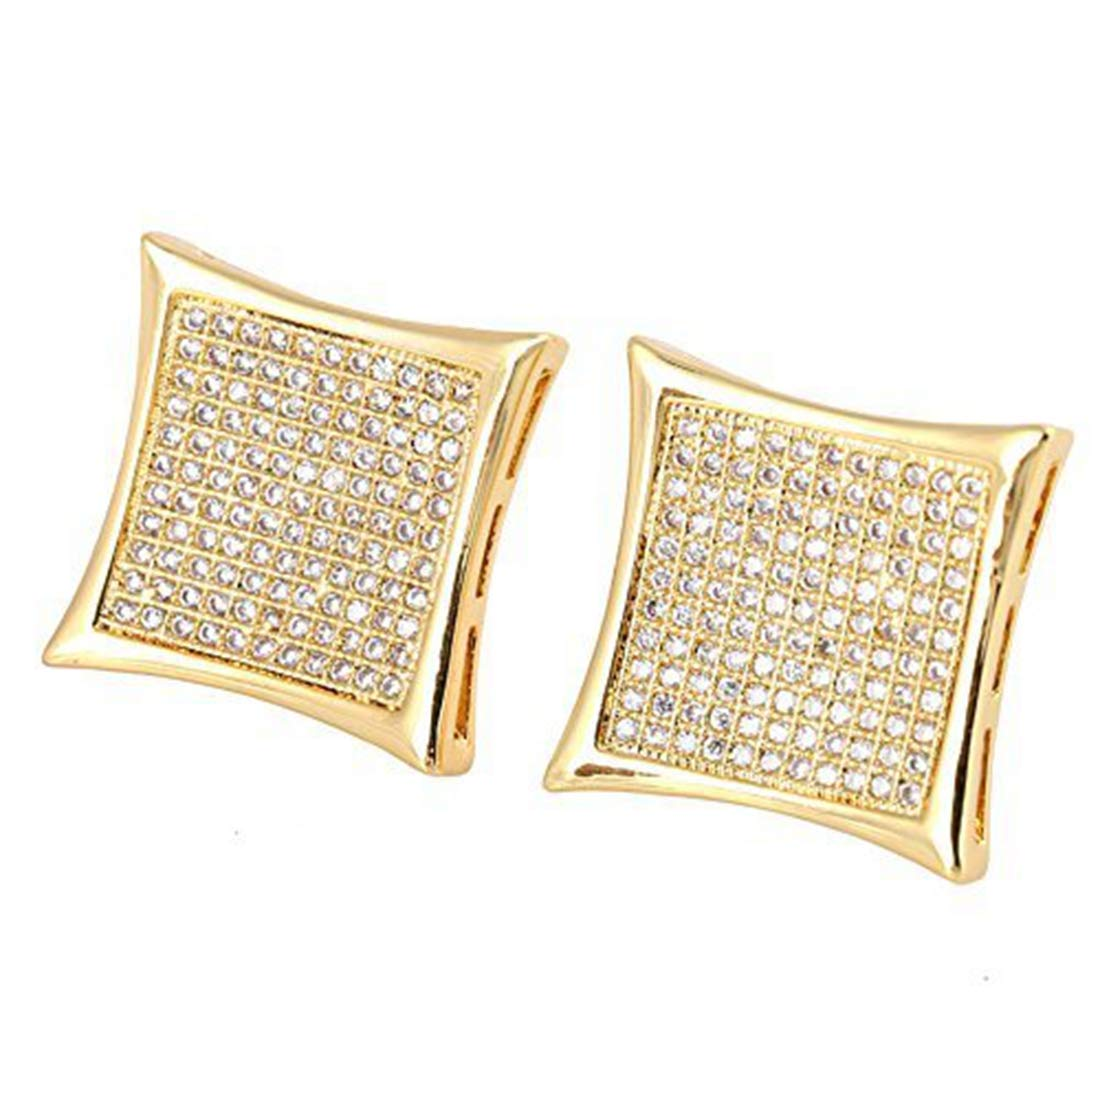 9c6a3e35c5bd6 Mens 14k Gold Plated Hip Hop Kite Screw Backs Earrings Iced Out 8  Rows(15mmx15mm)